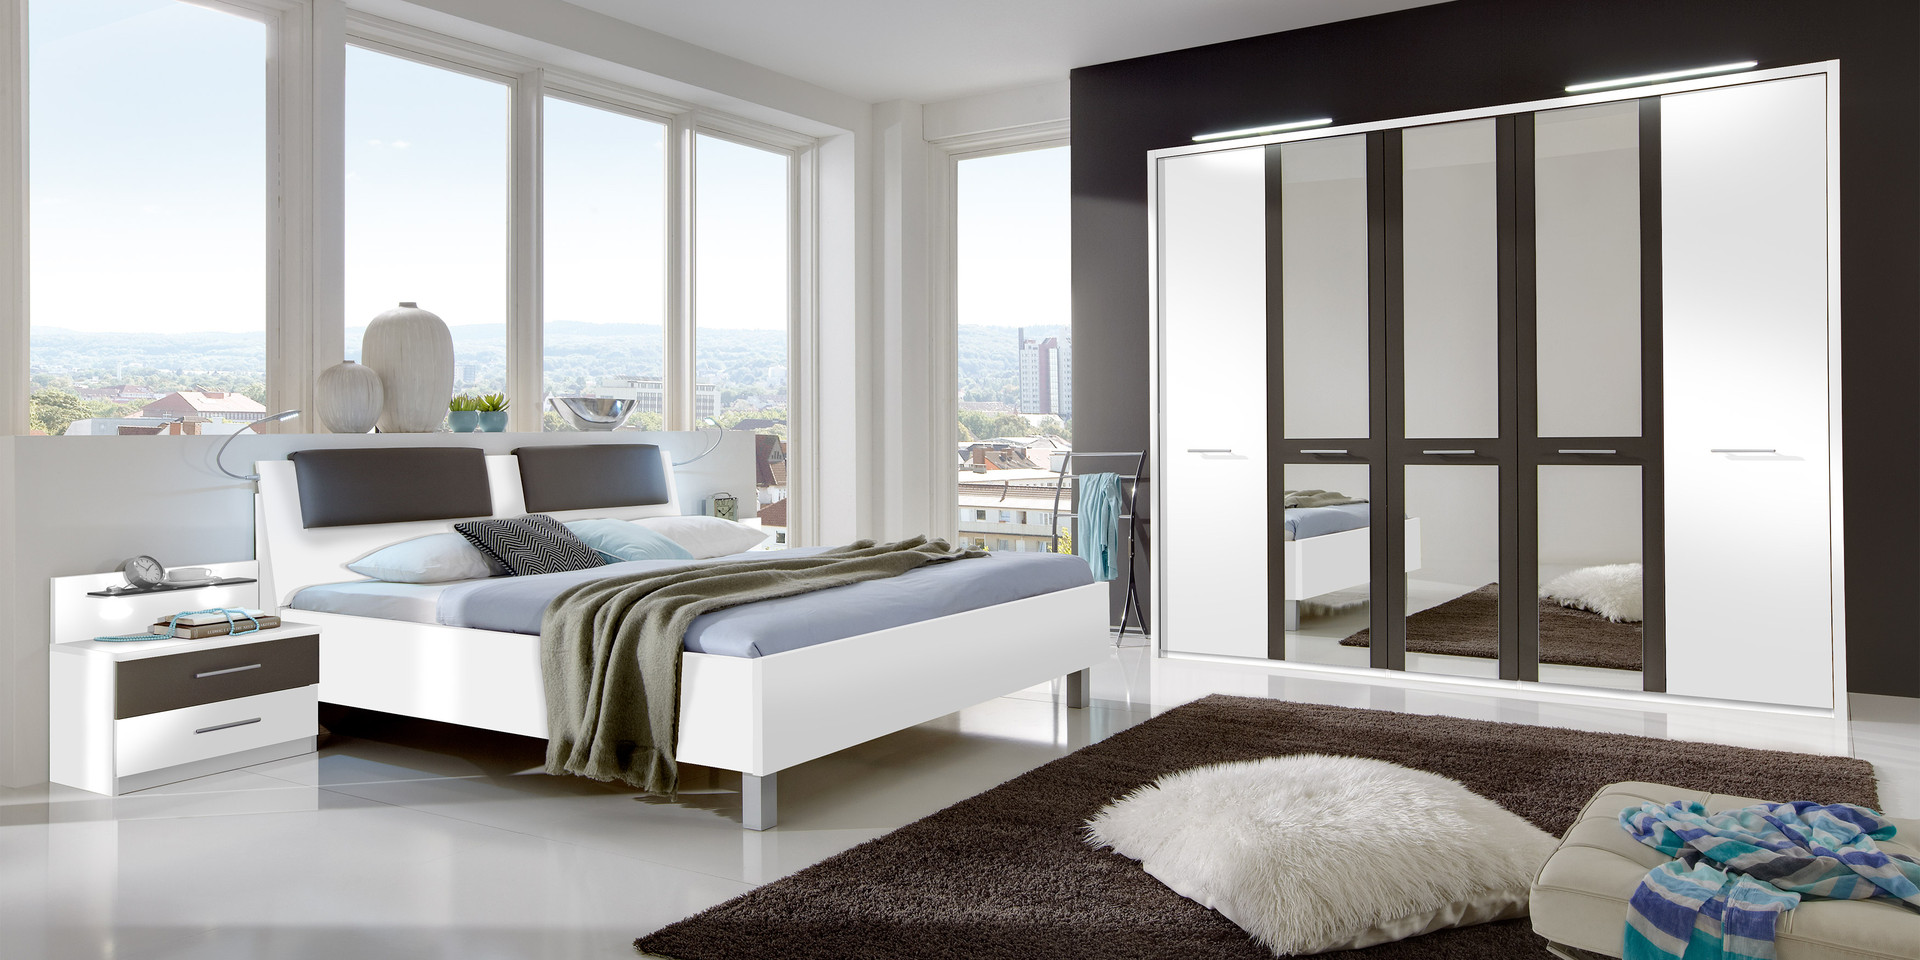 schlafzimmer modern schlafzimmer modern wandschruge best zirbenholz schlafzimmer modern. Black Bedroom Furniture Sets. Home Design Ideas